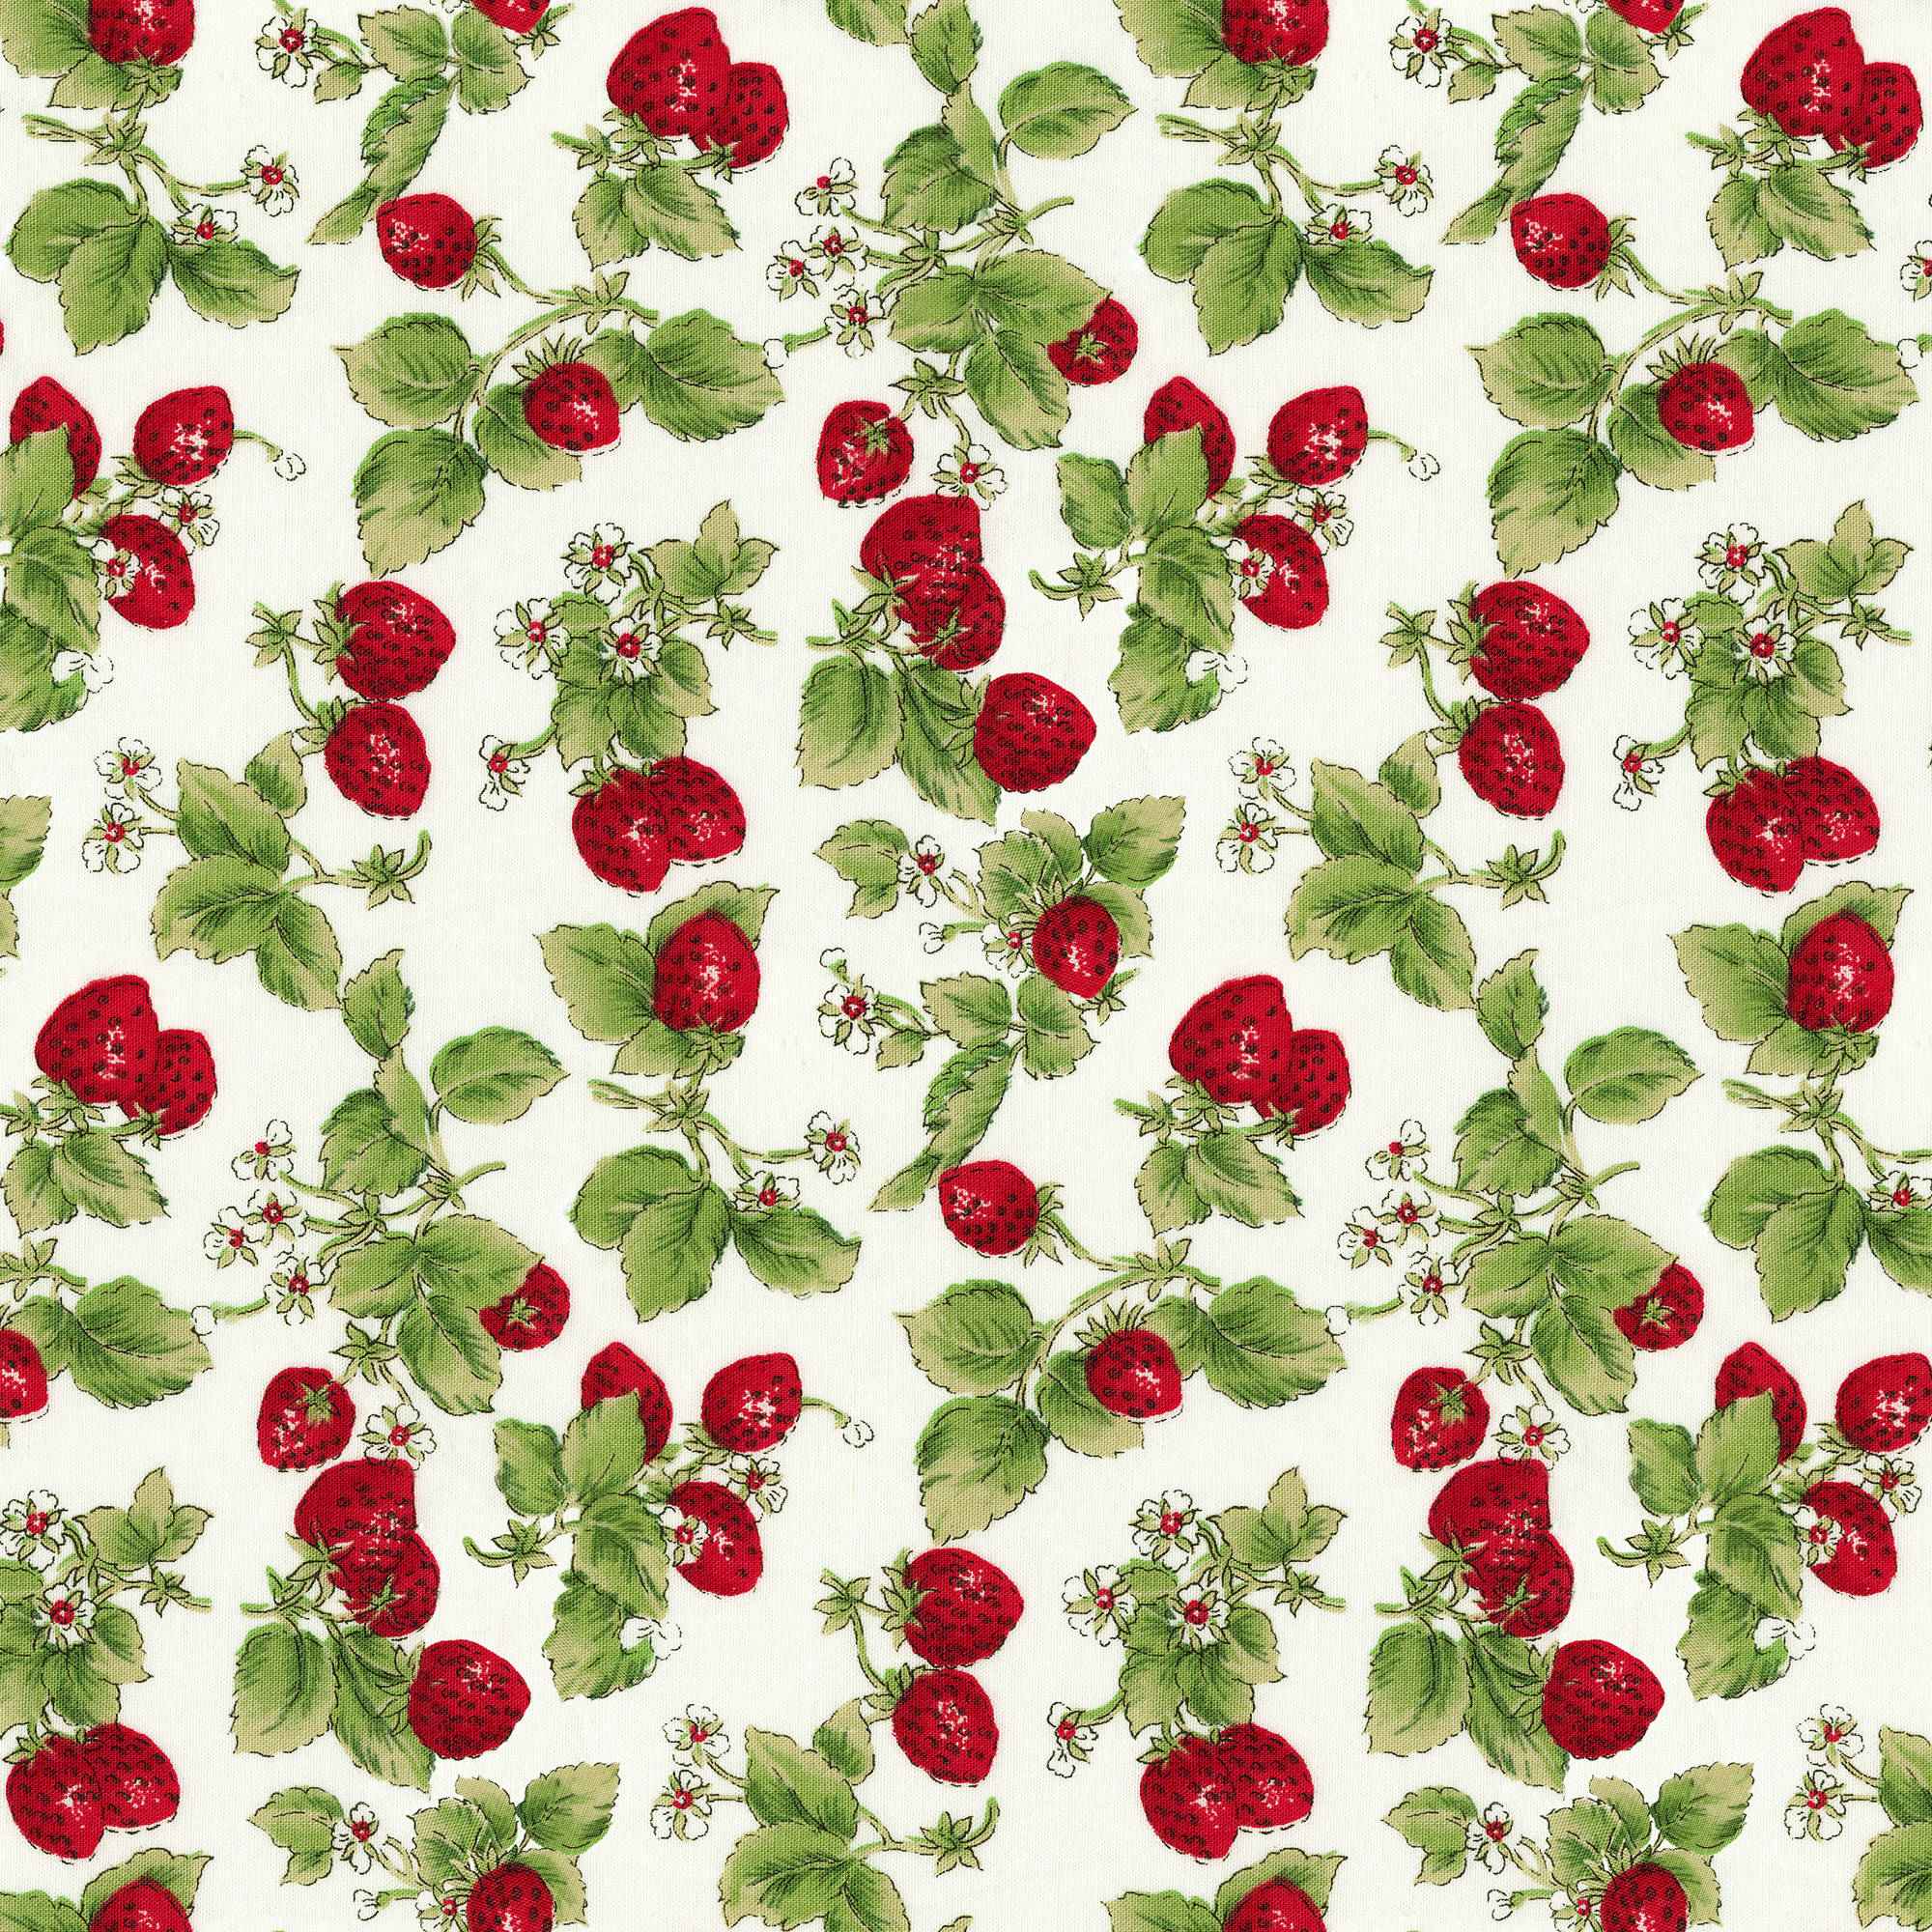 Rose And Hubble Strawberries Quilting Cotton Fabric By The Yard, 44""